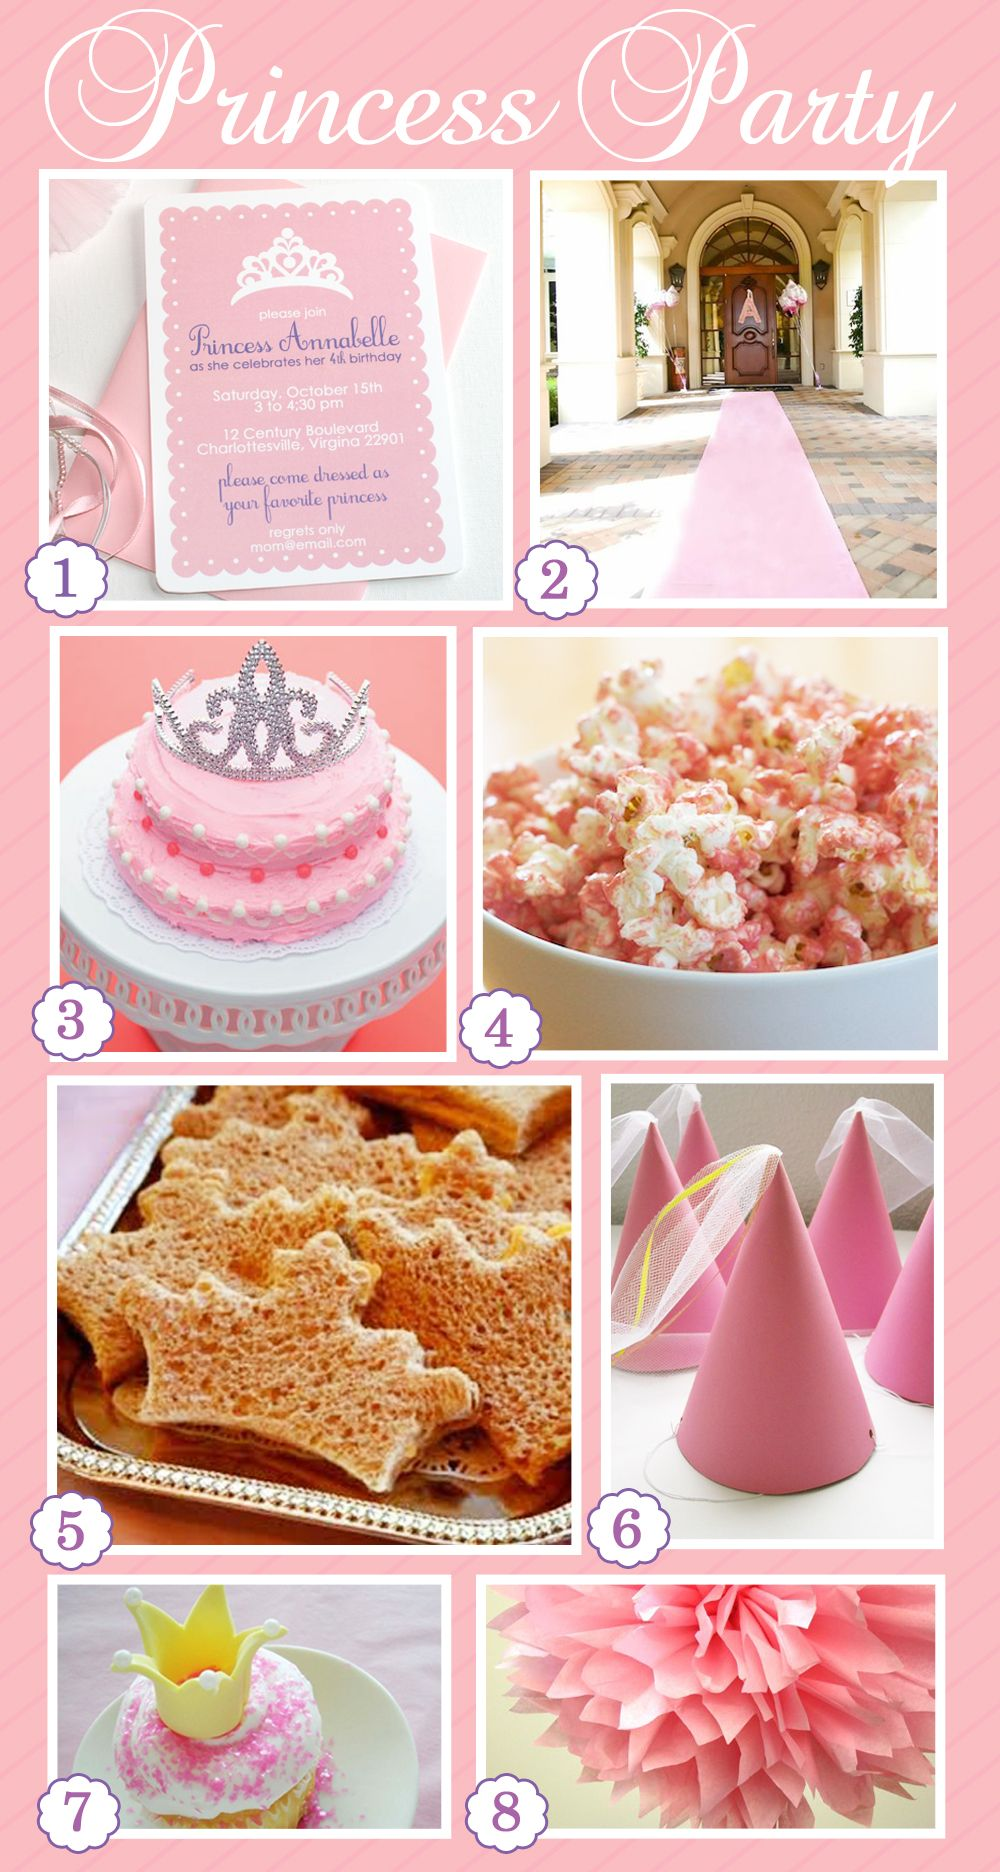 Birthday Party Ideas | Princess Party